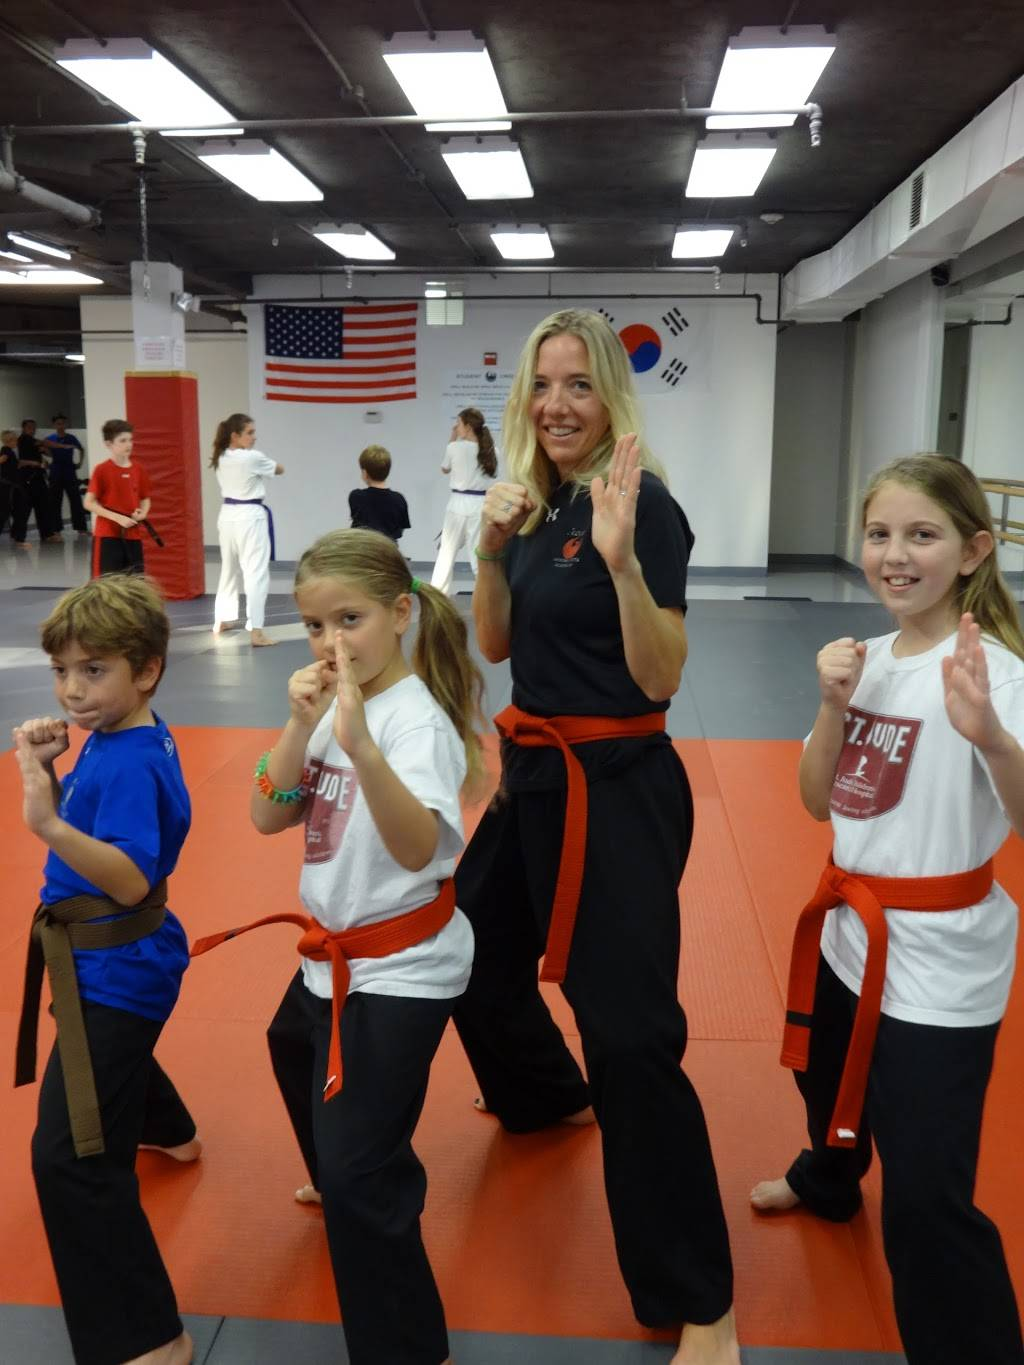 Coles Martial Arts Academy - health  | Photo 2 of 3 | Address: 4916 Fairmont Ave, Bethesda, MD 20814, USA | Phone: (301) 986-1002